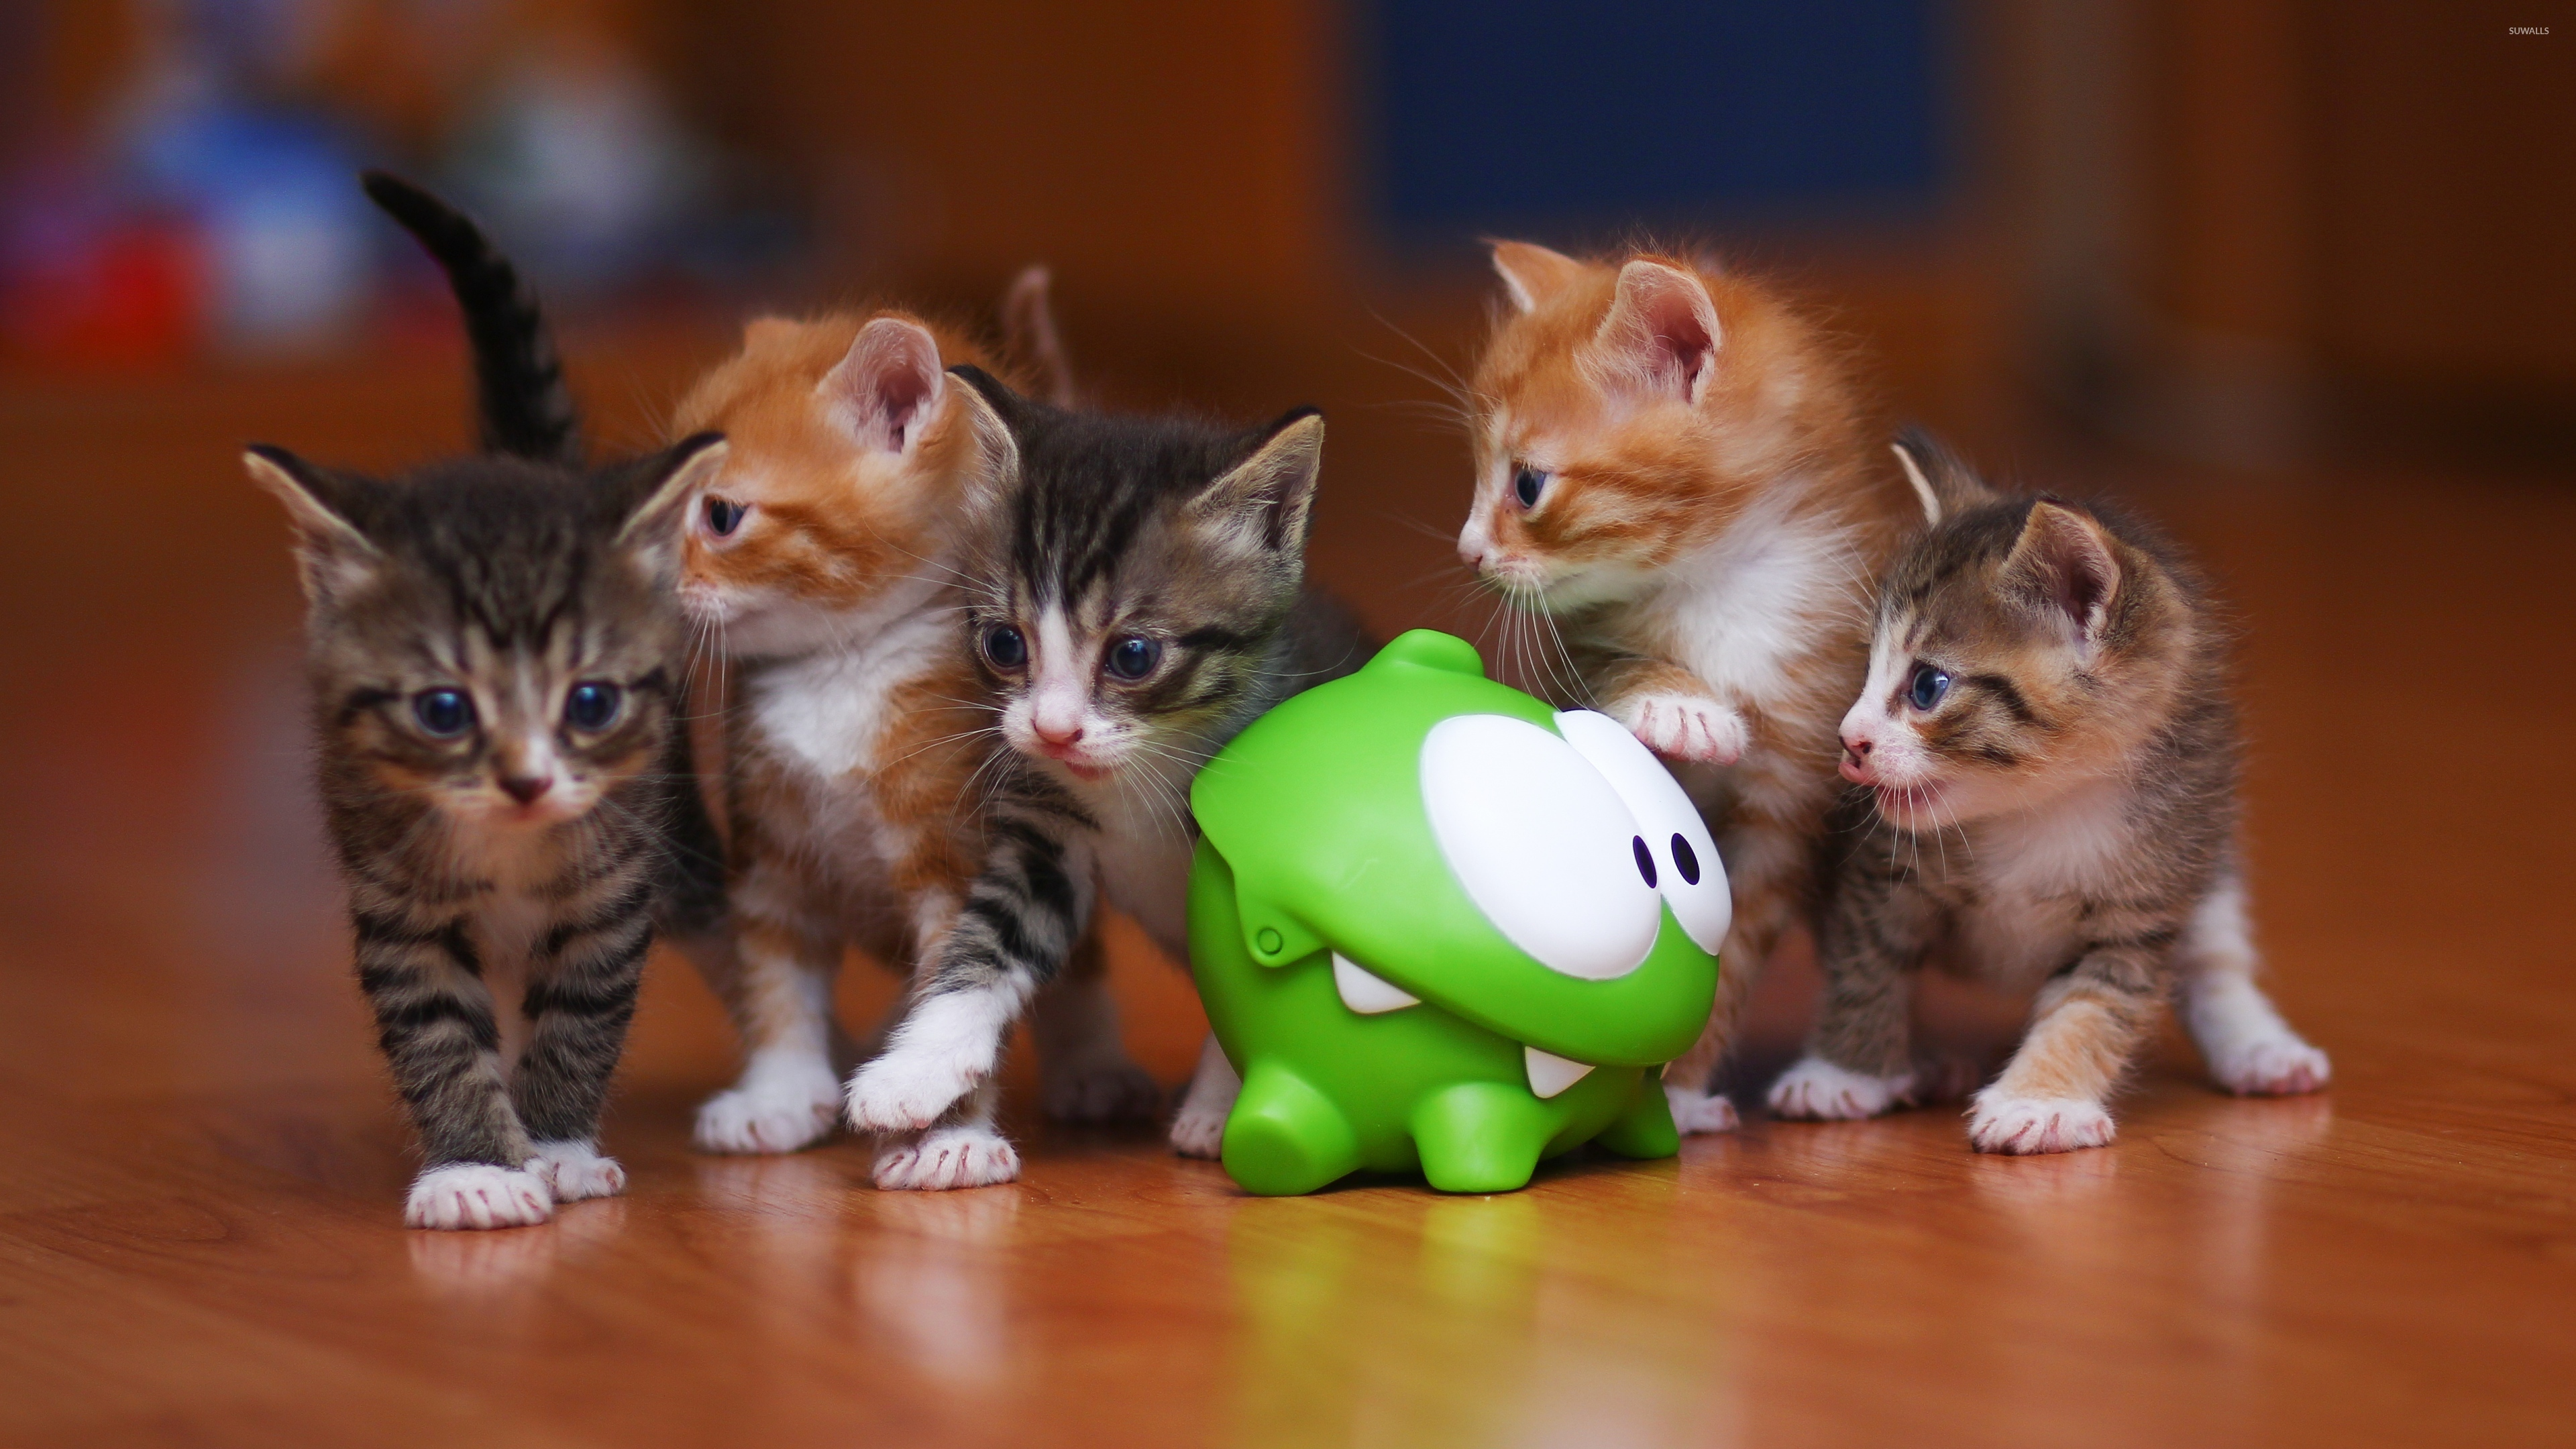 Cute kittens wallpaper animal wallpapers 39942 cute kittens wallpaper thecheapjerseys Gallery